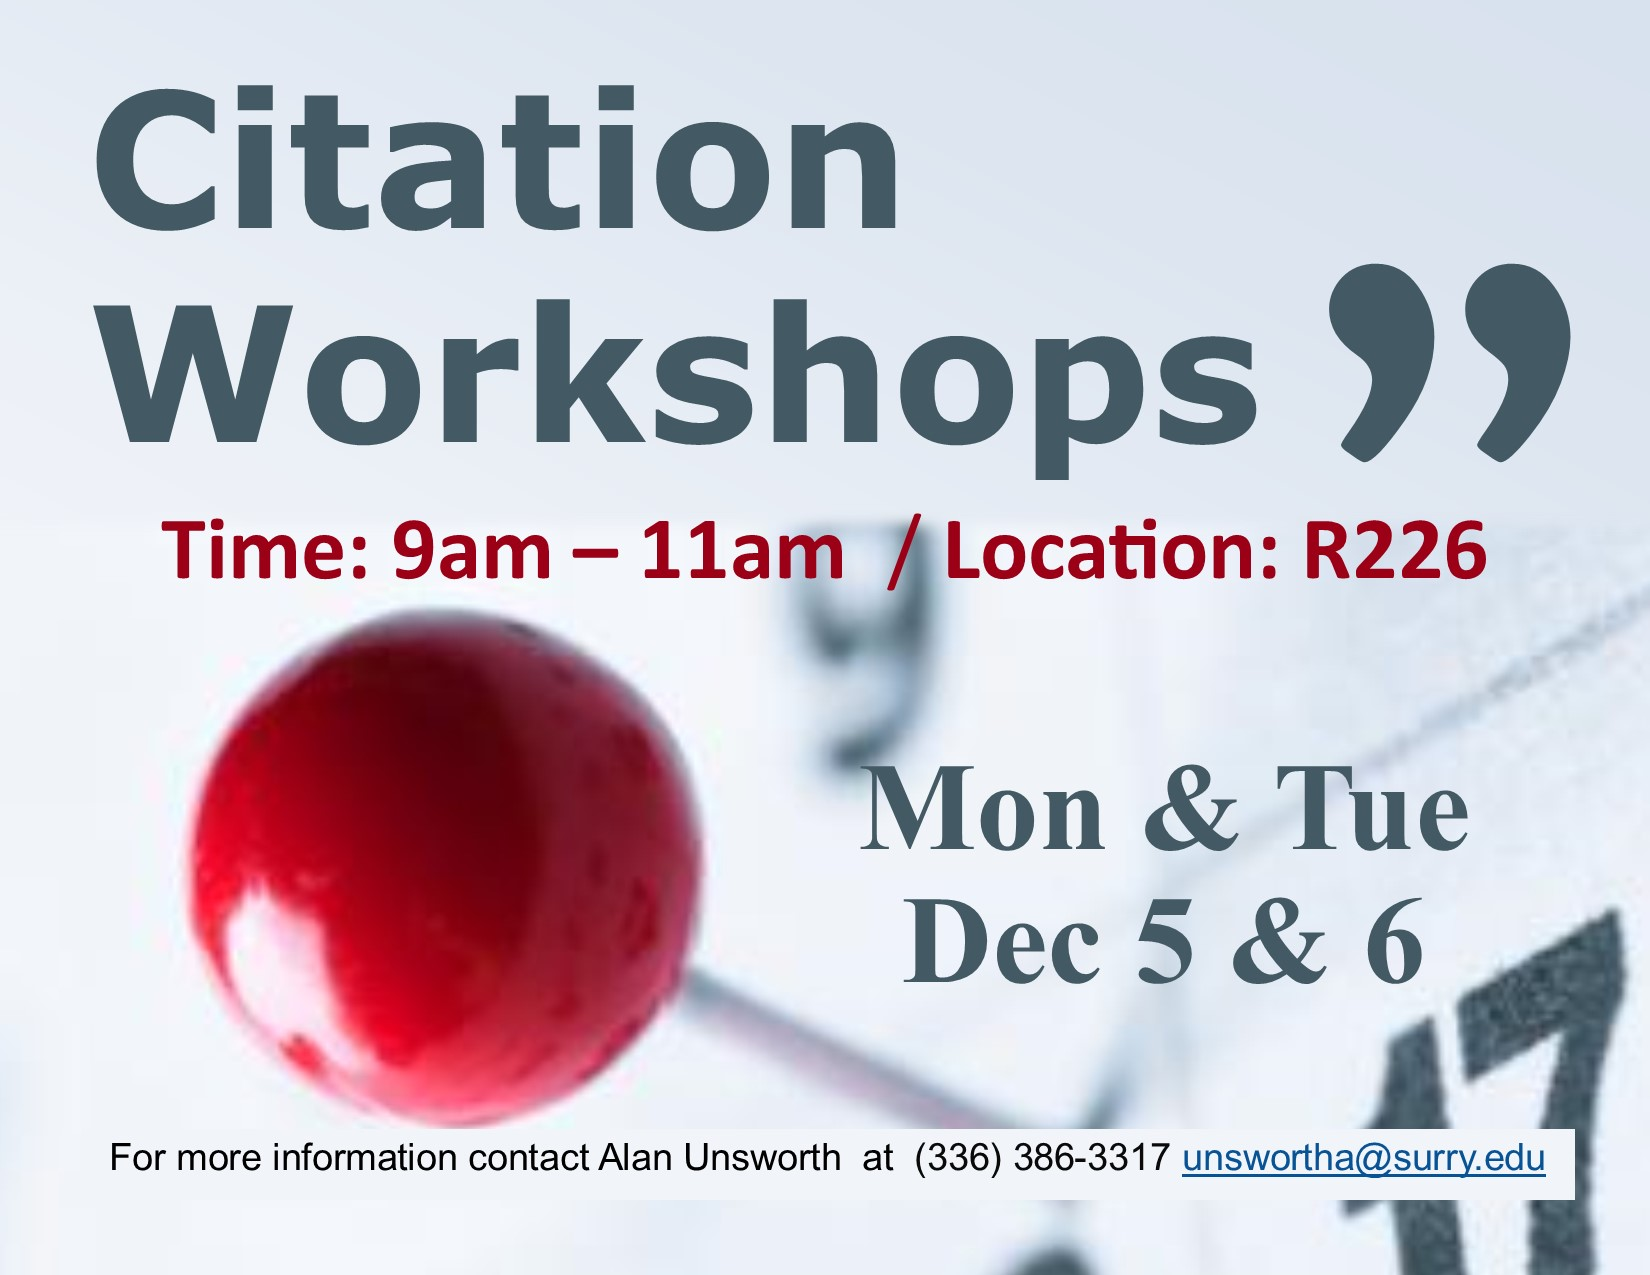 Citation Workshops decorative image